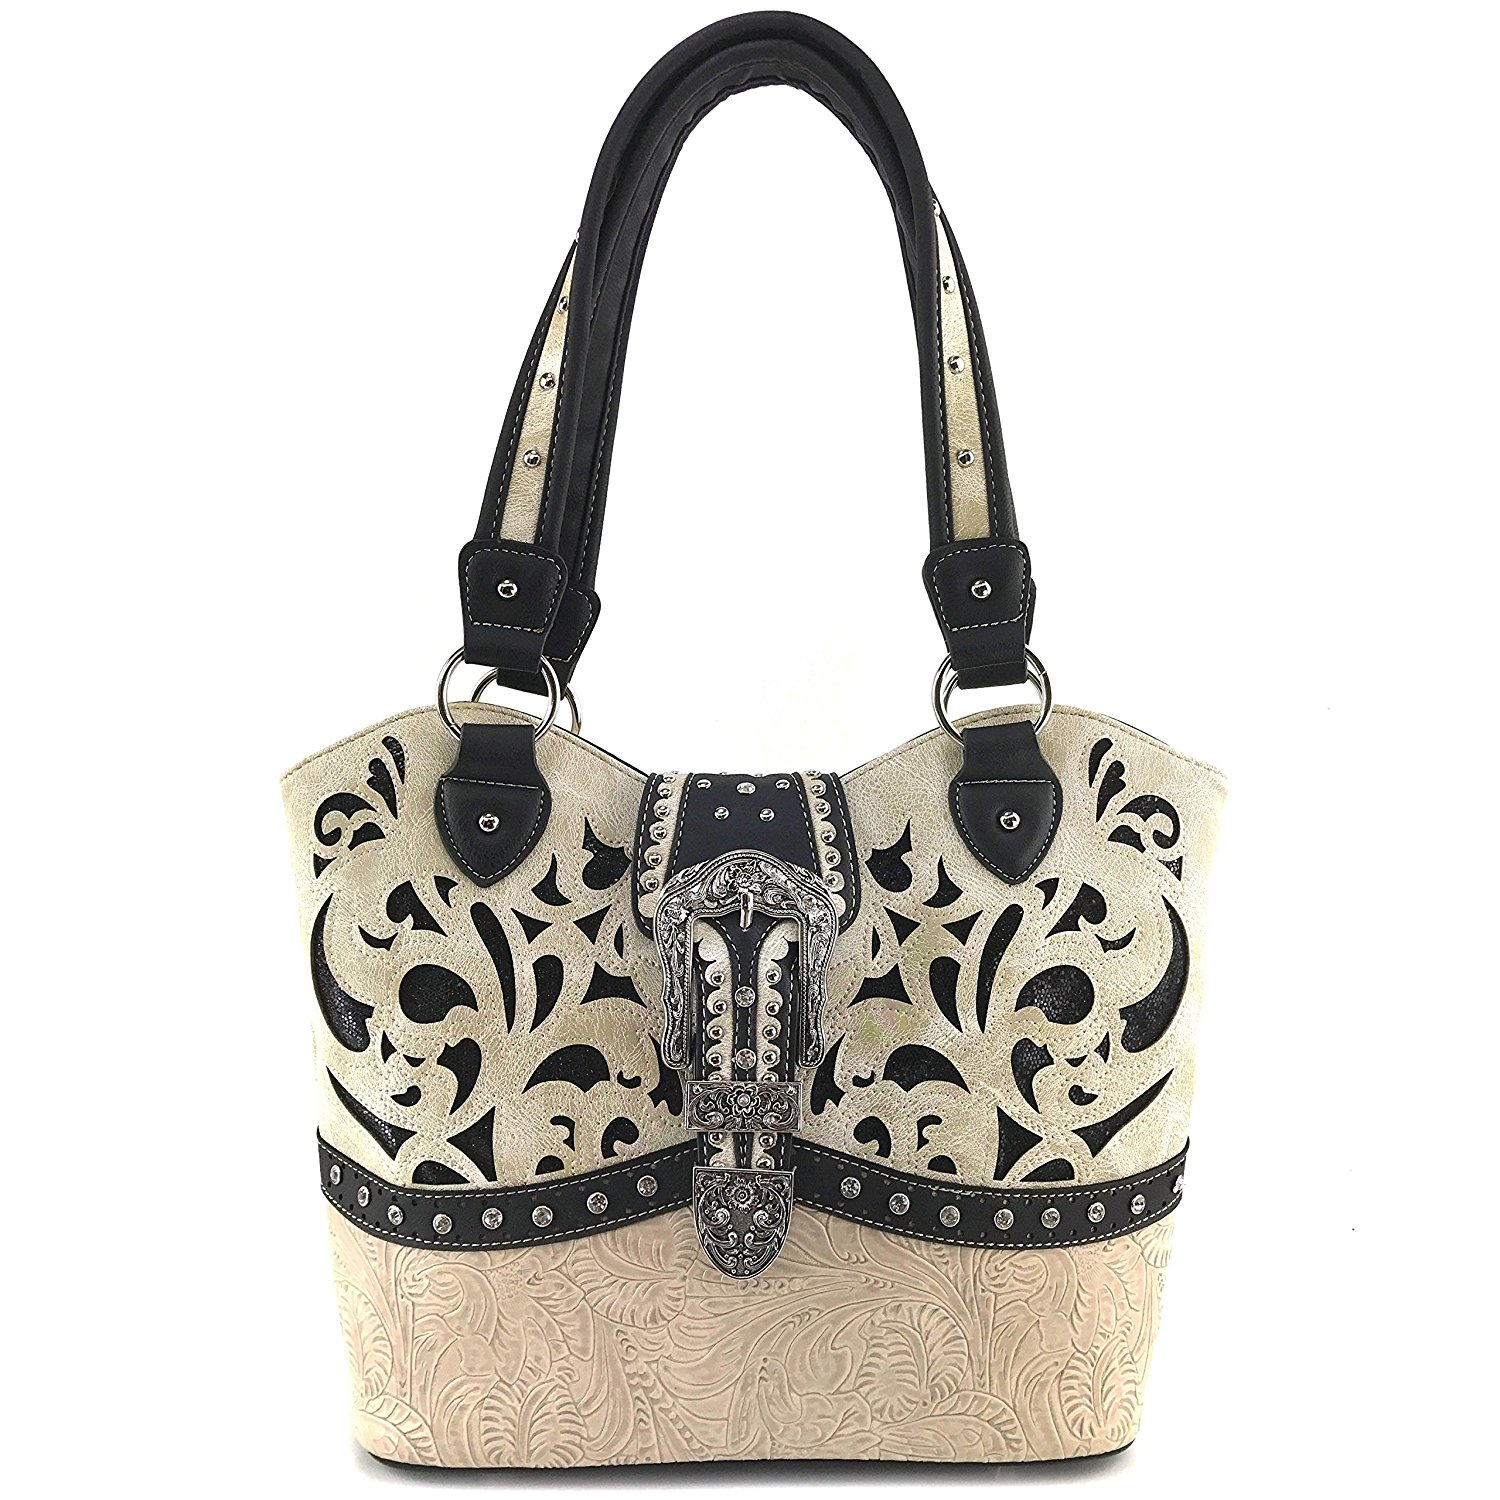 eca9546bfb0a Get Quotations · Justin West Tooled Laser Cut Leather Floral Embroidery  Rhinestone Buckle Studded Shoulder Concealed Carry Tote Style